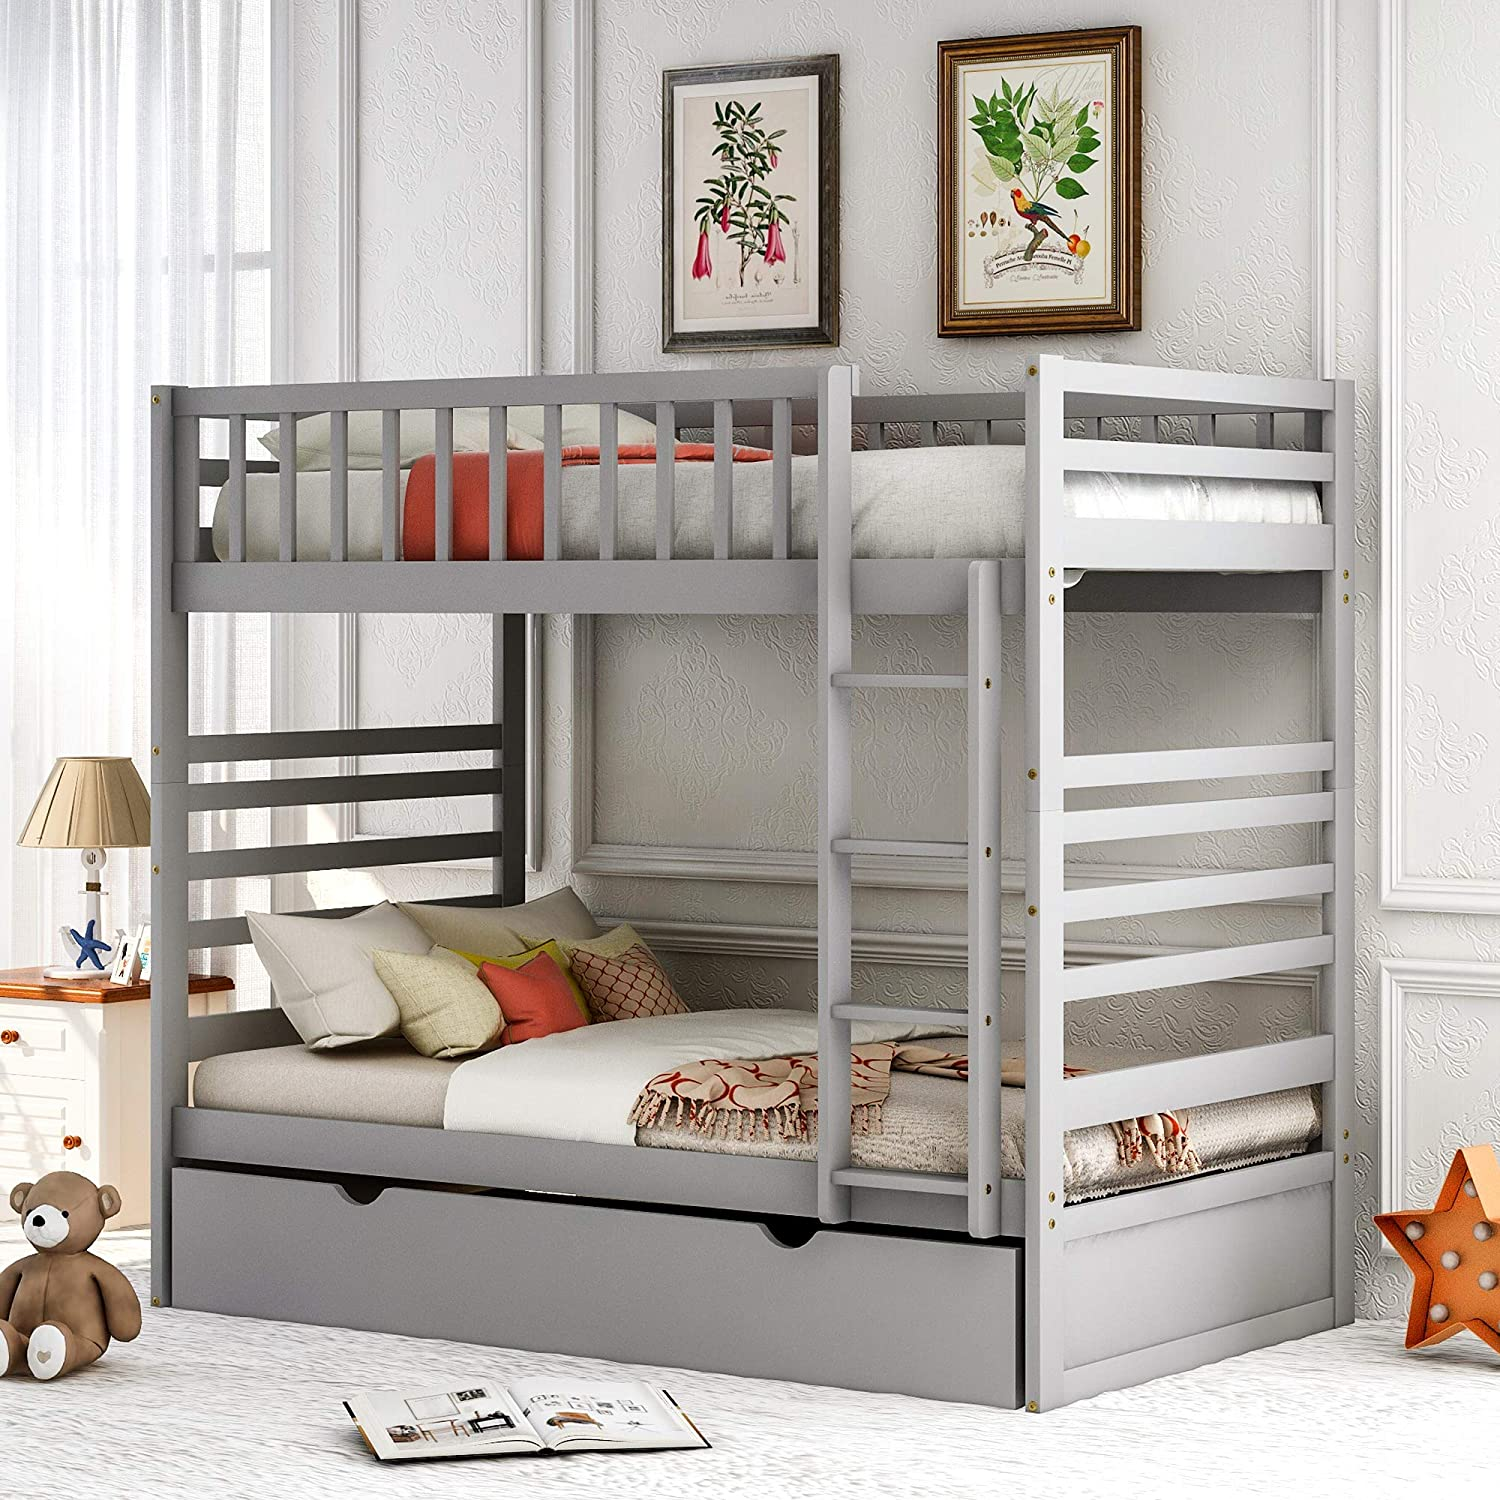 Buy Twin Over Twin Bunk Beds For Kids Bunk Bed With Trundle Wooden Twin Size Trundle Bed Frame With Safety Rail And Ladder Gray Online In Turkey B08fsz1ybs